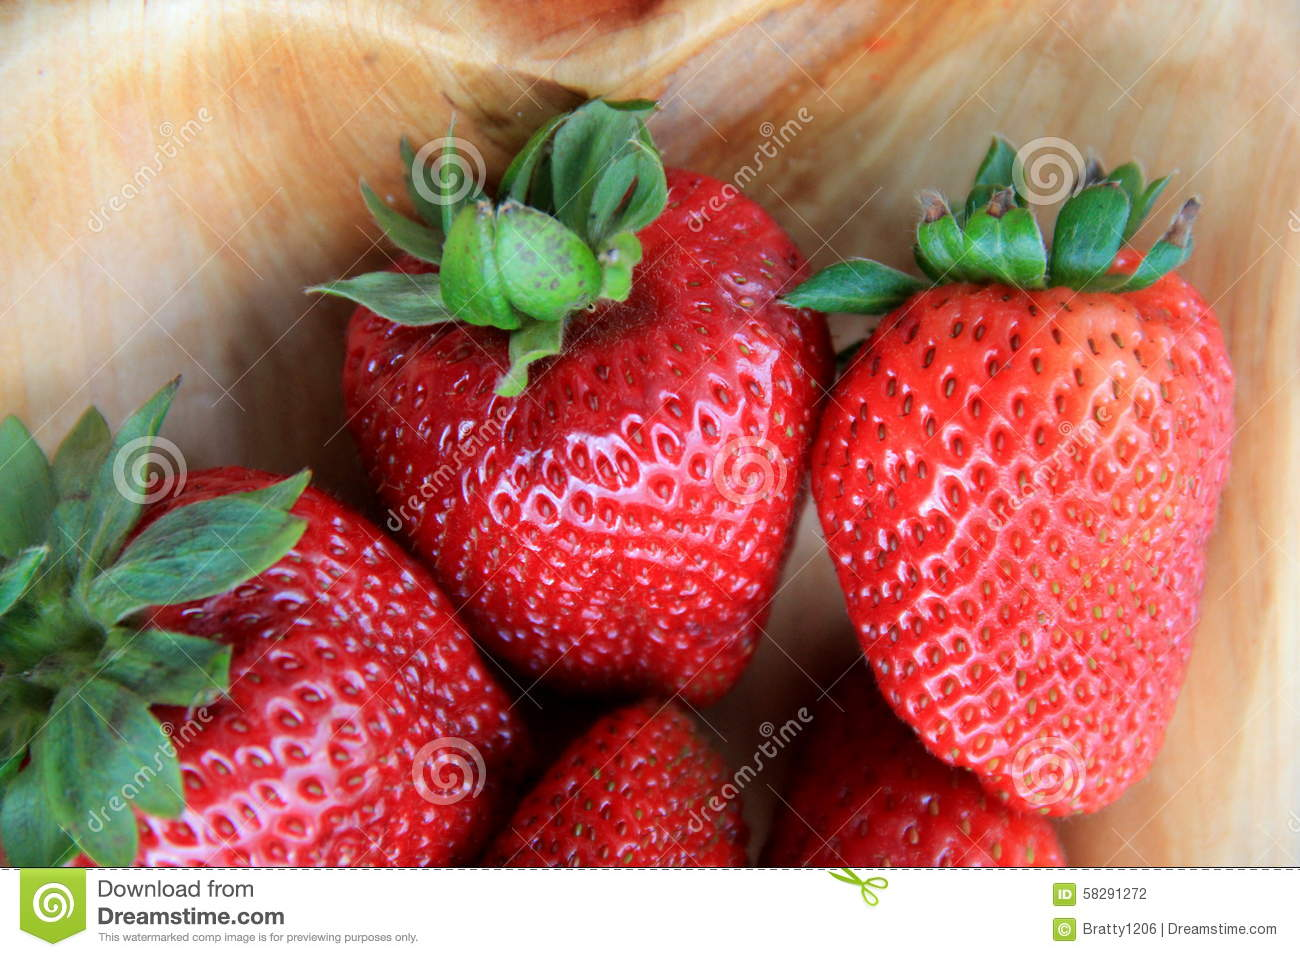 how to properly clean strawberries